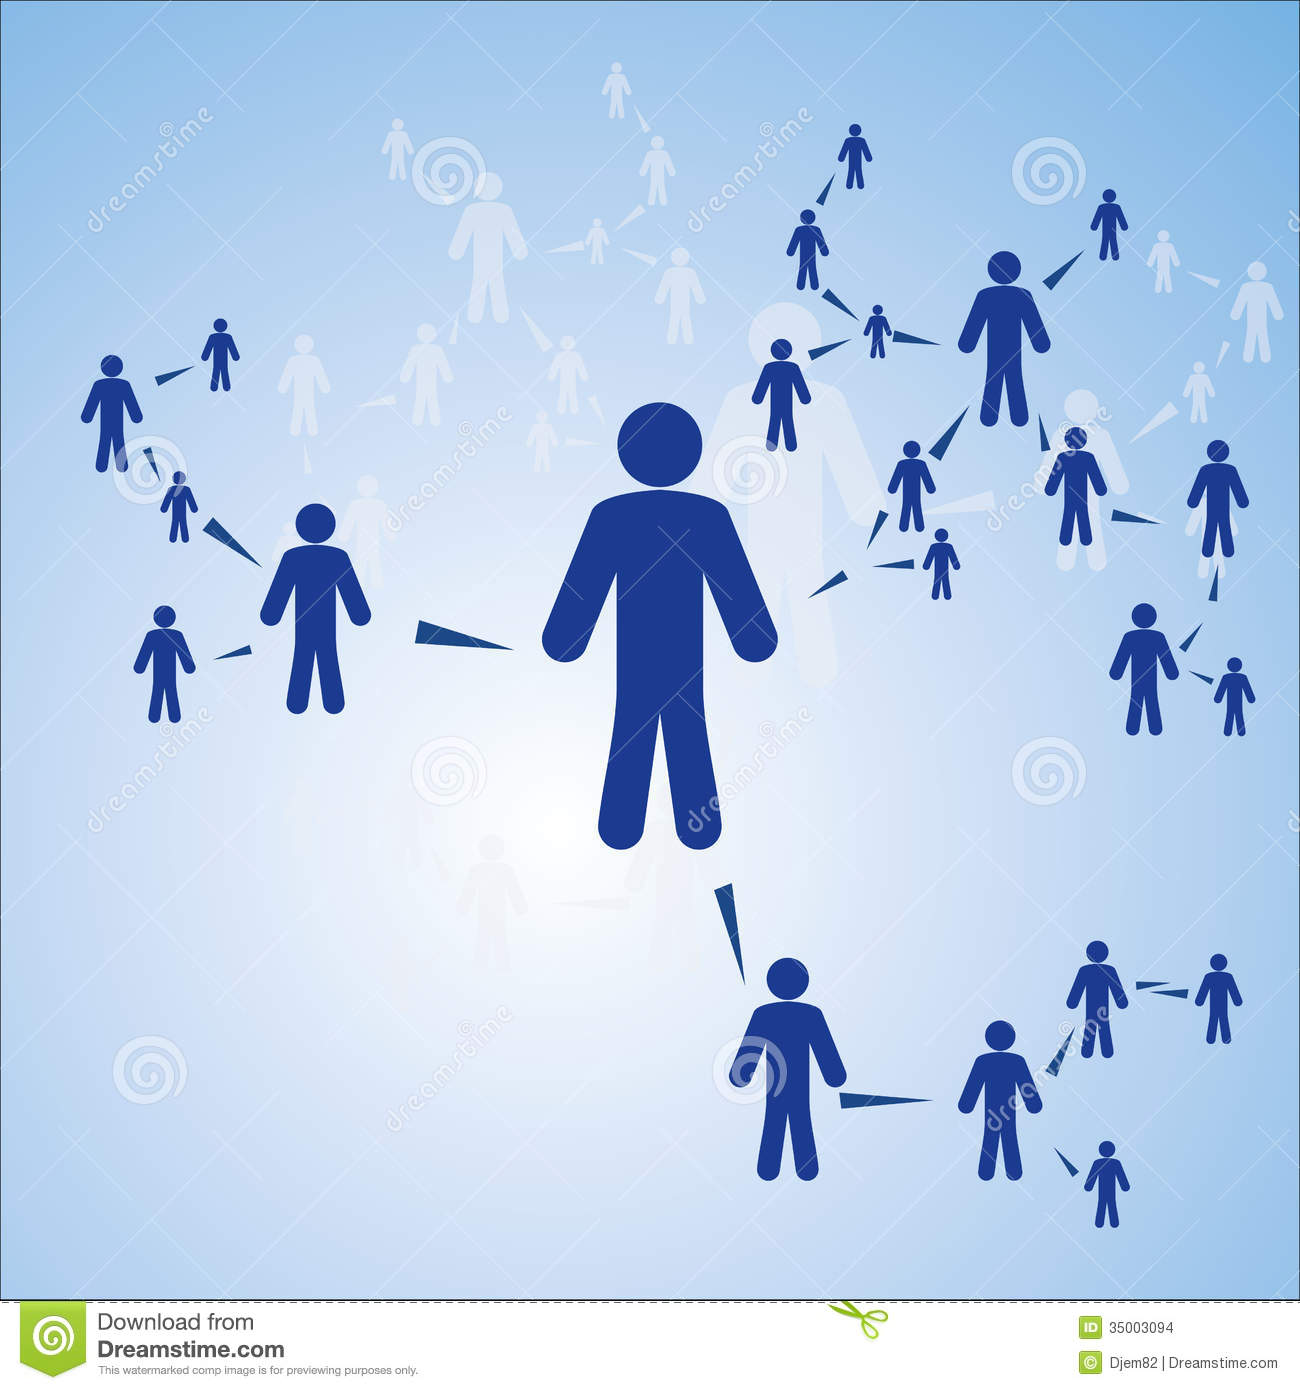 Human Connection On The Blue Background Vector Illustration